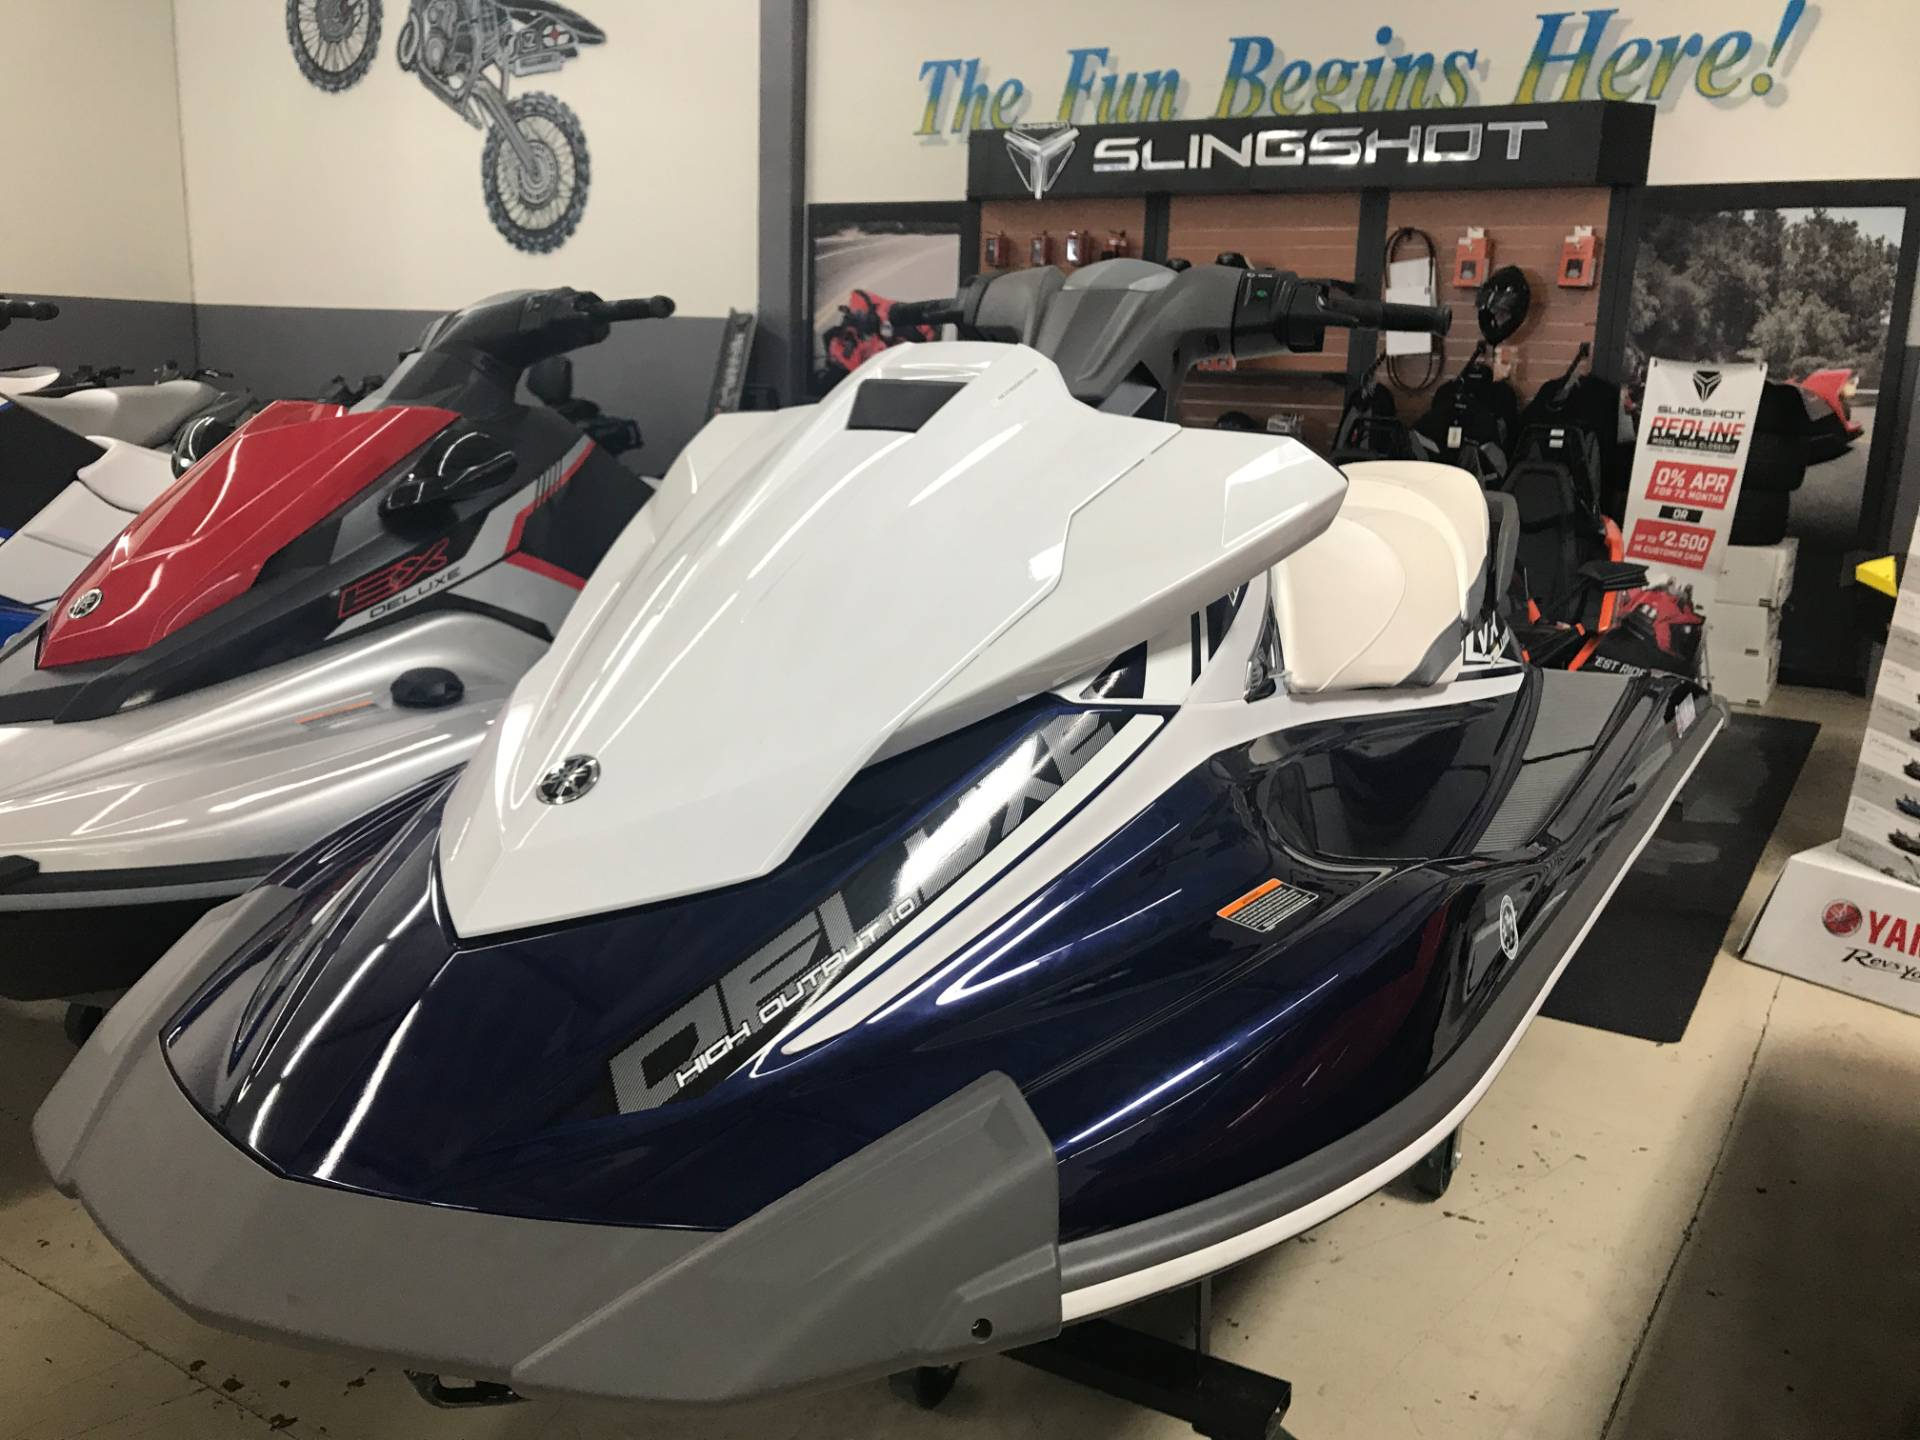 2016 Yamaha VX Deluxe for sale 5802